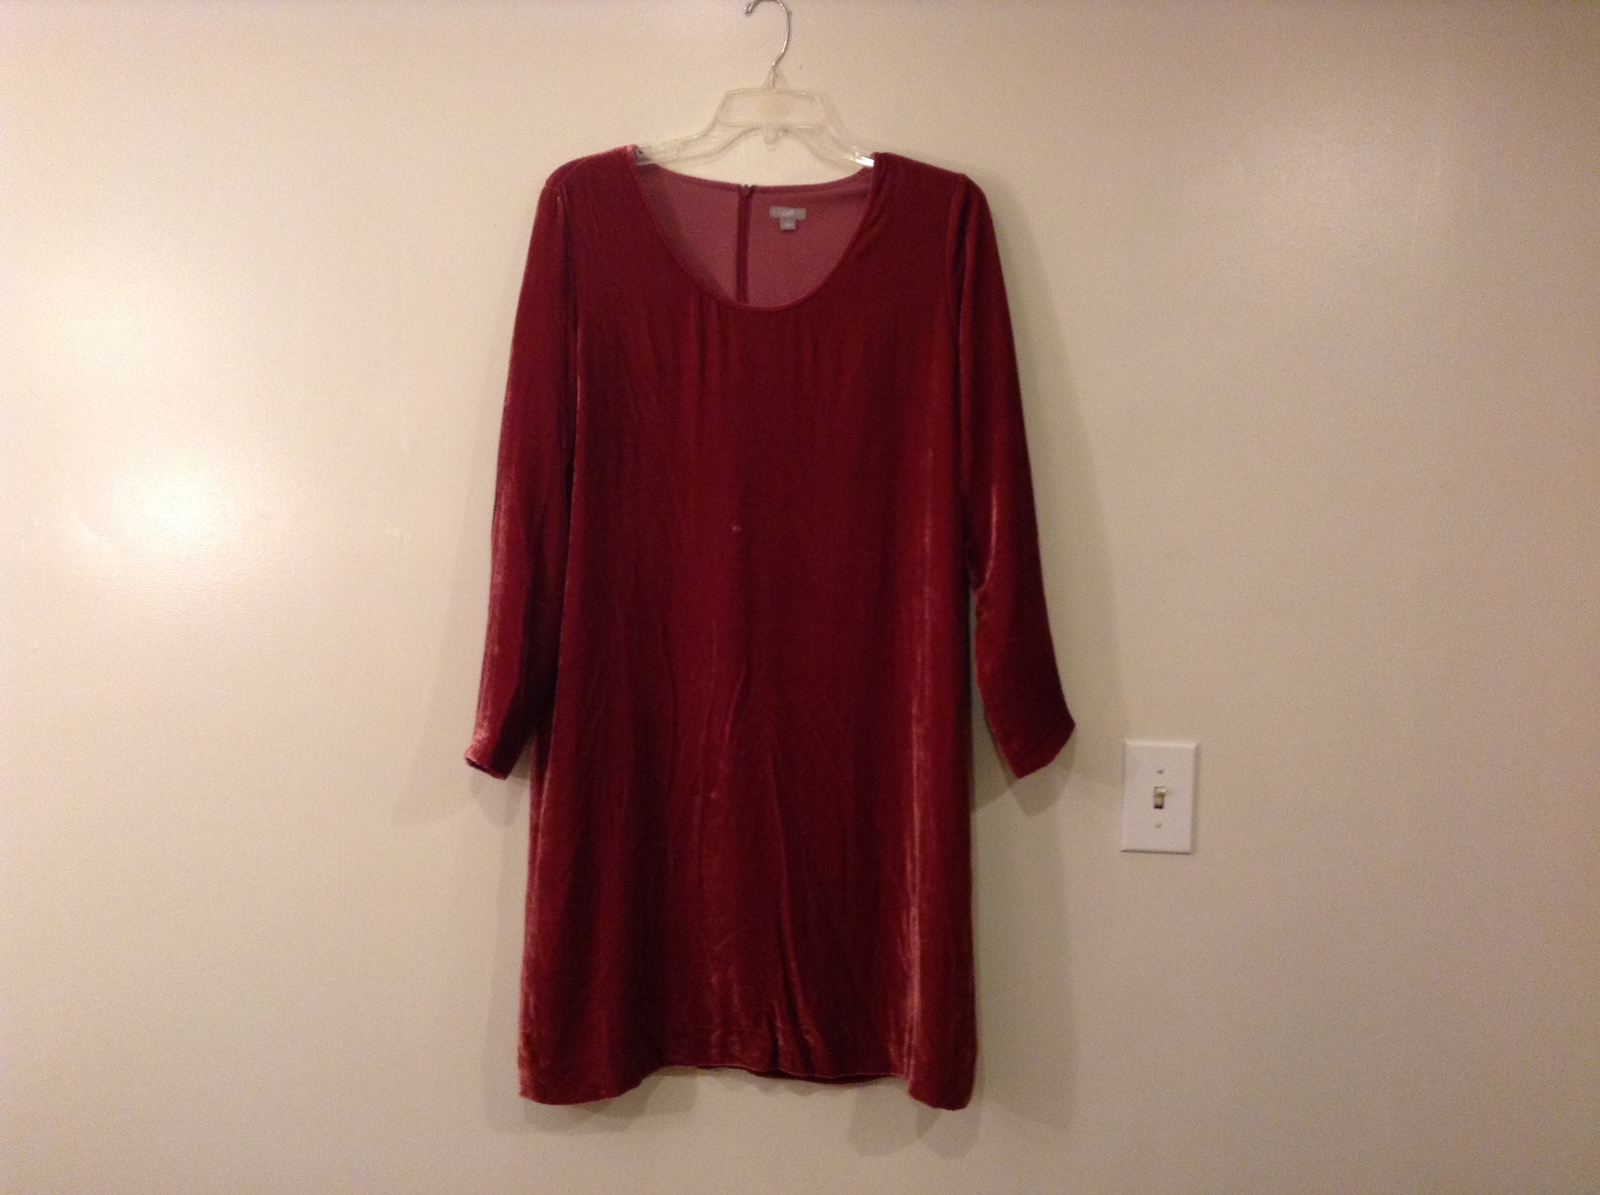 J.Jill Dark Pink/Red Velvet Knee Length Dress Deep Scoop Neck Fully Lined Size L